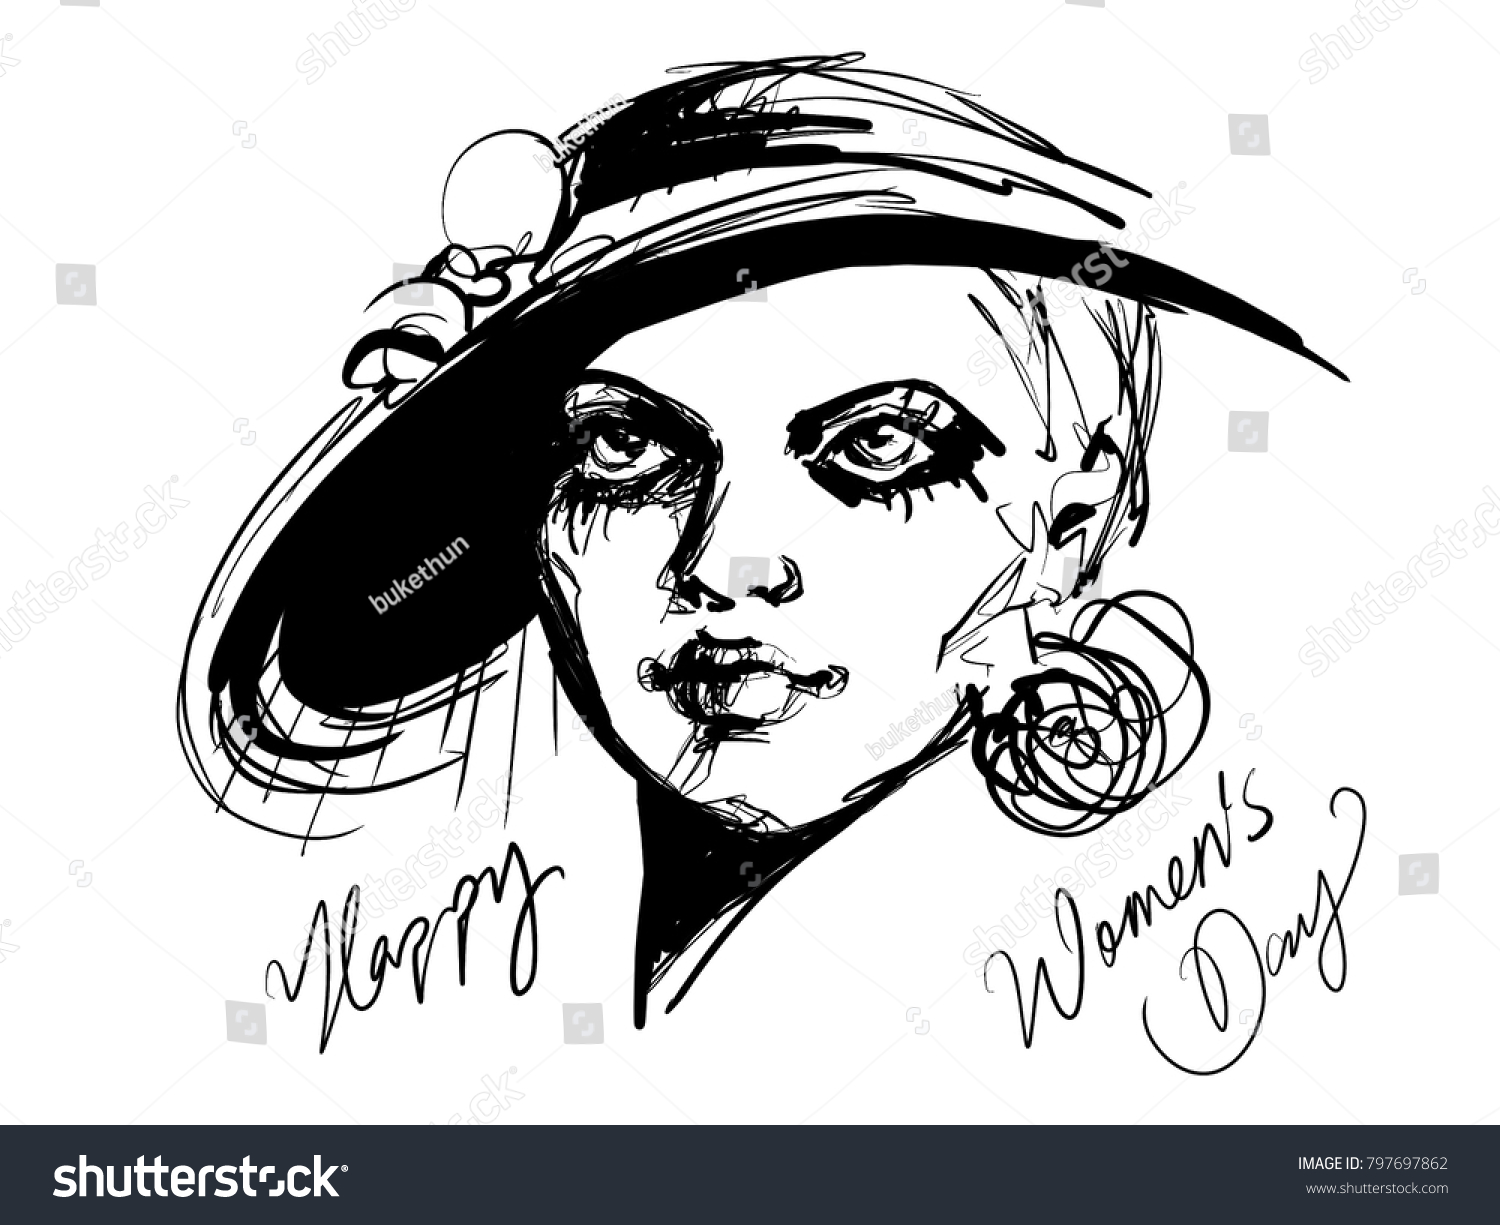 Happy womens day design with artistic pencil sketch vintage woman portait